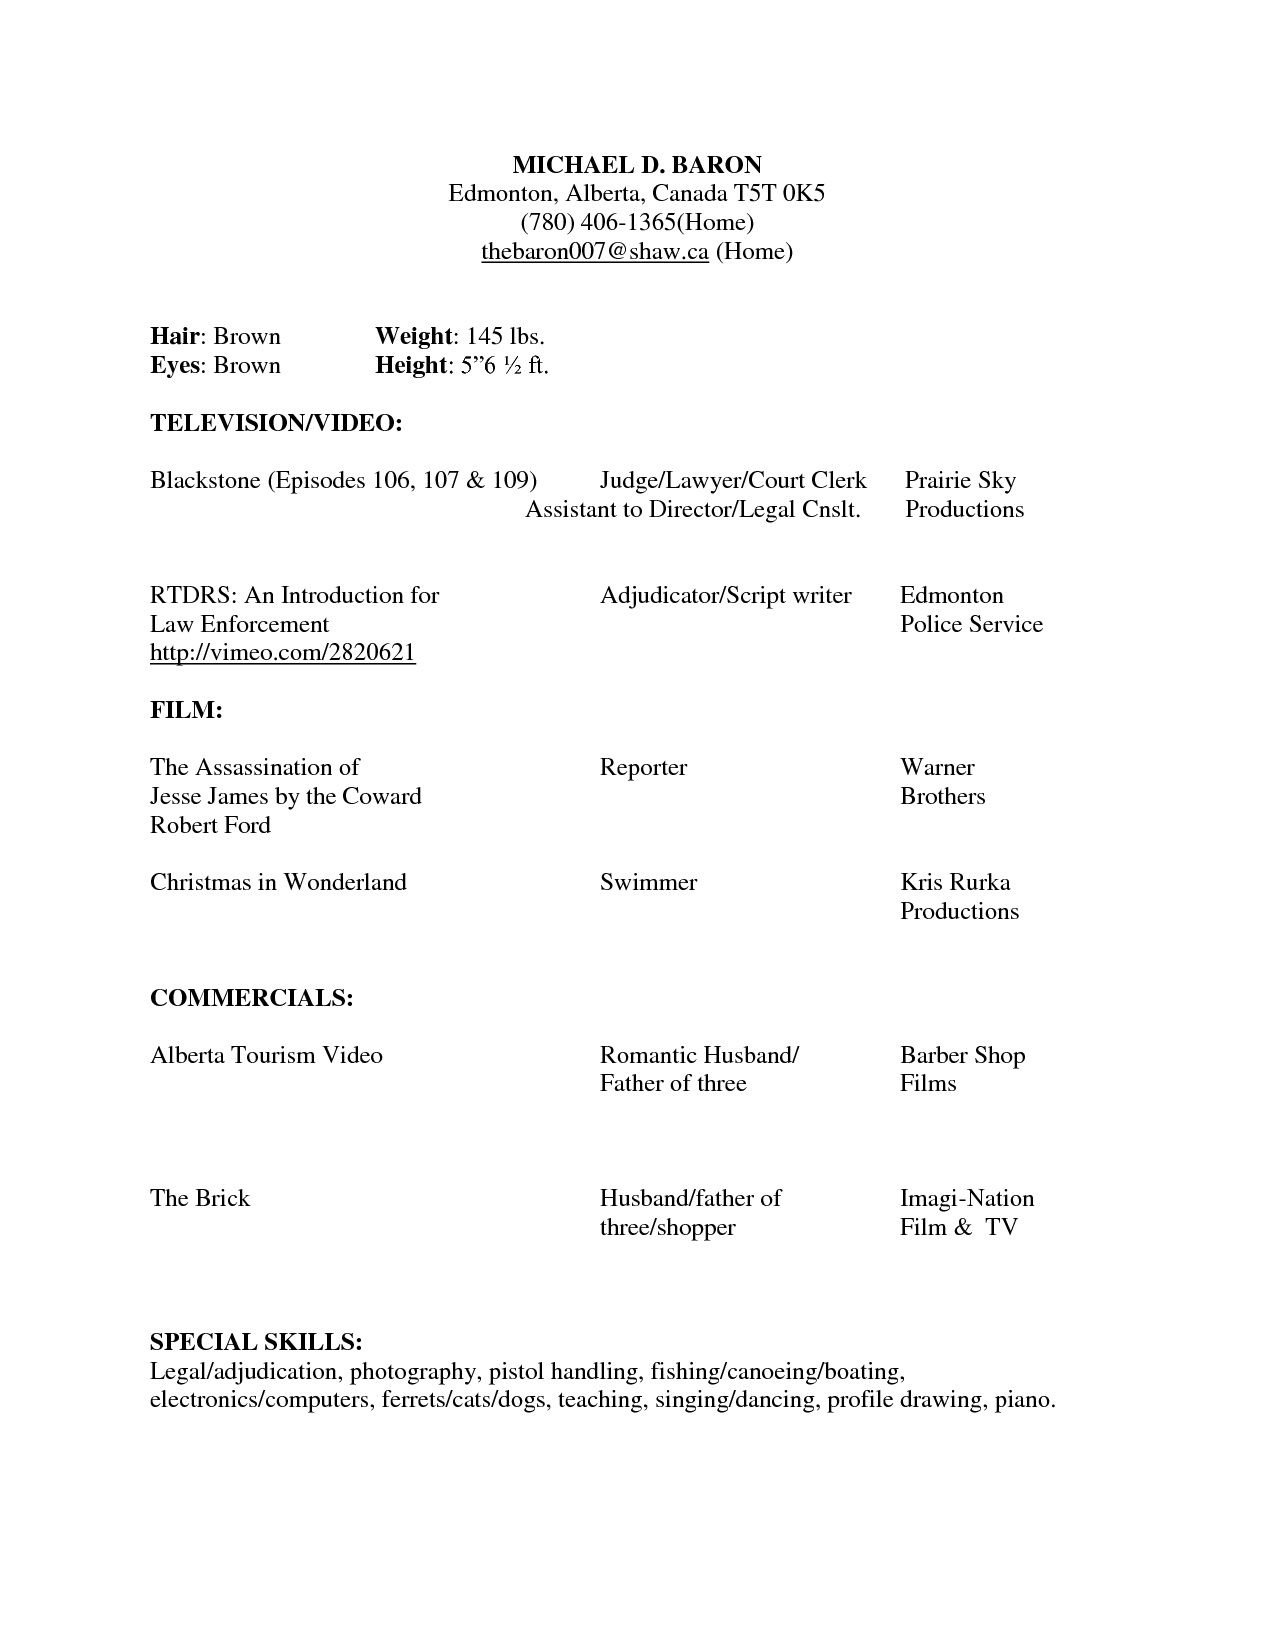 Beginner Acting Resume Sample   Beginner Acting Resume Sample Are Examples  We Provide As Reference To  How To Make A Acting Resume